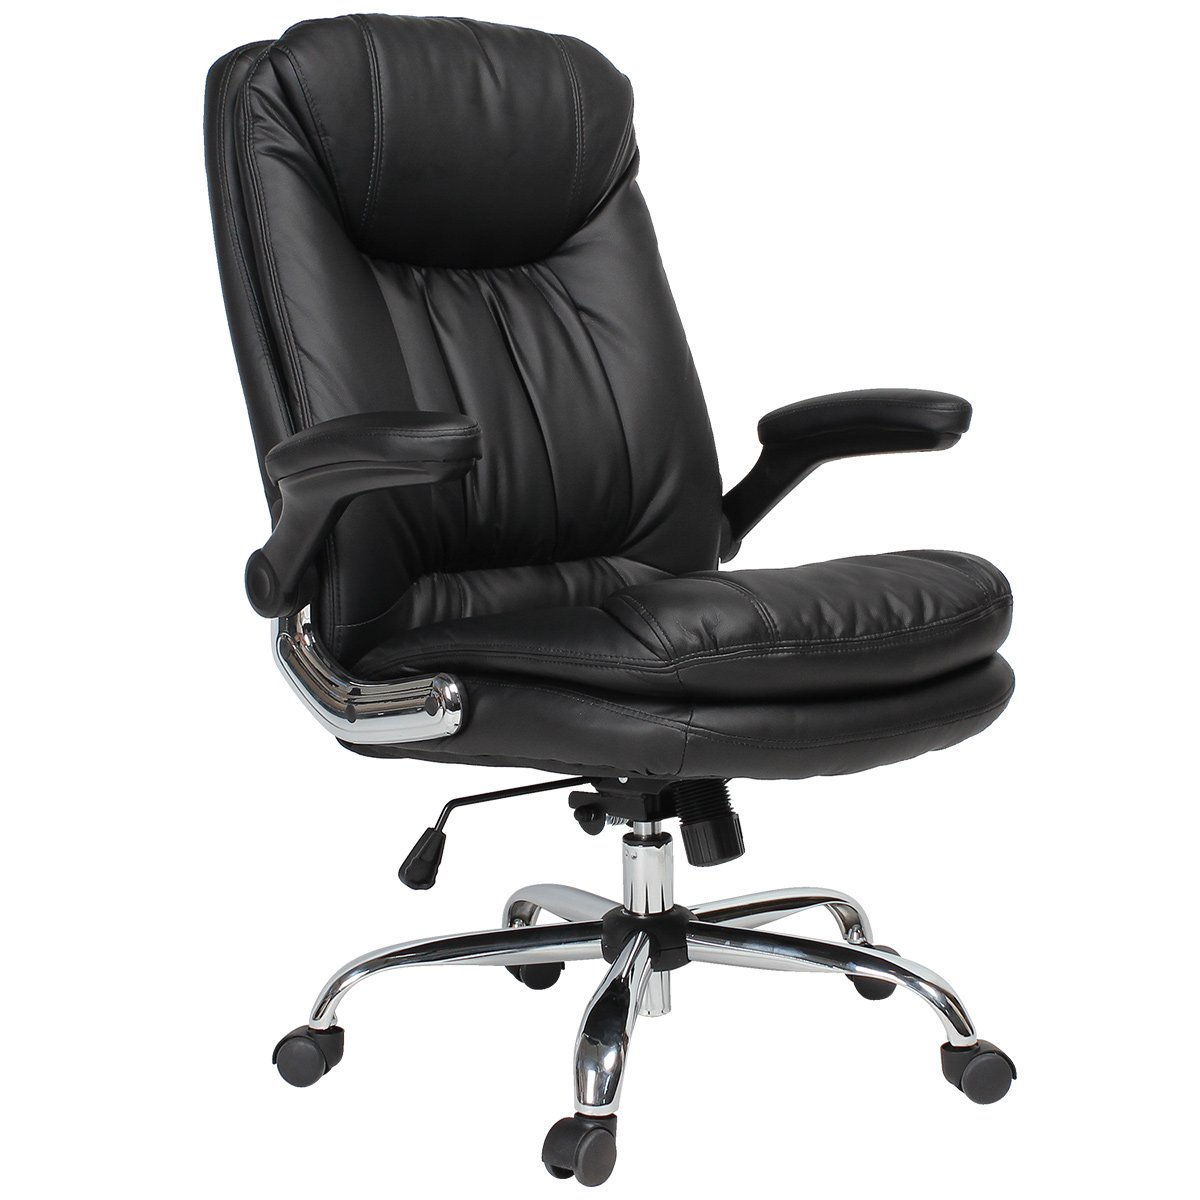 Yamasoro Ergonomic High Back Black Executive Pu Leather Office Chair With Flip Up Arms, Swivel, Big And Tall Black by Yamasoro